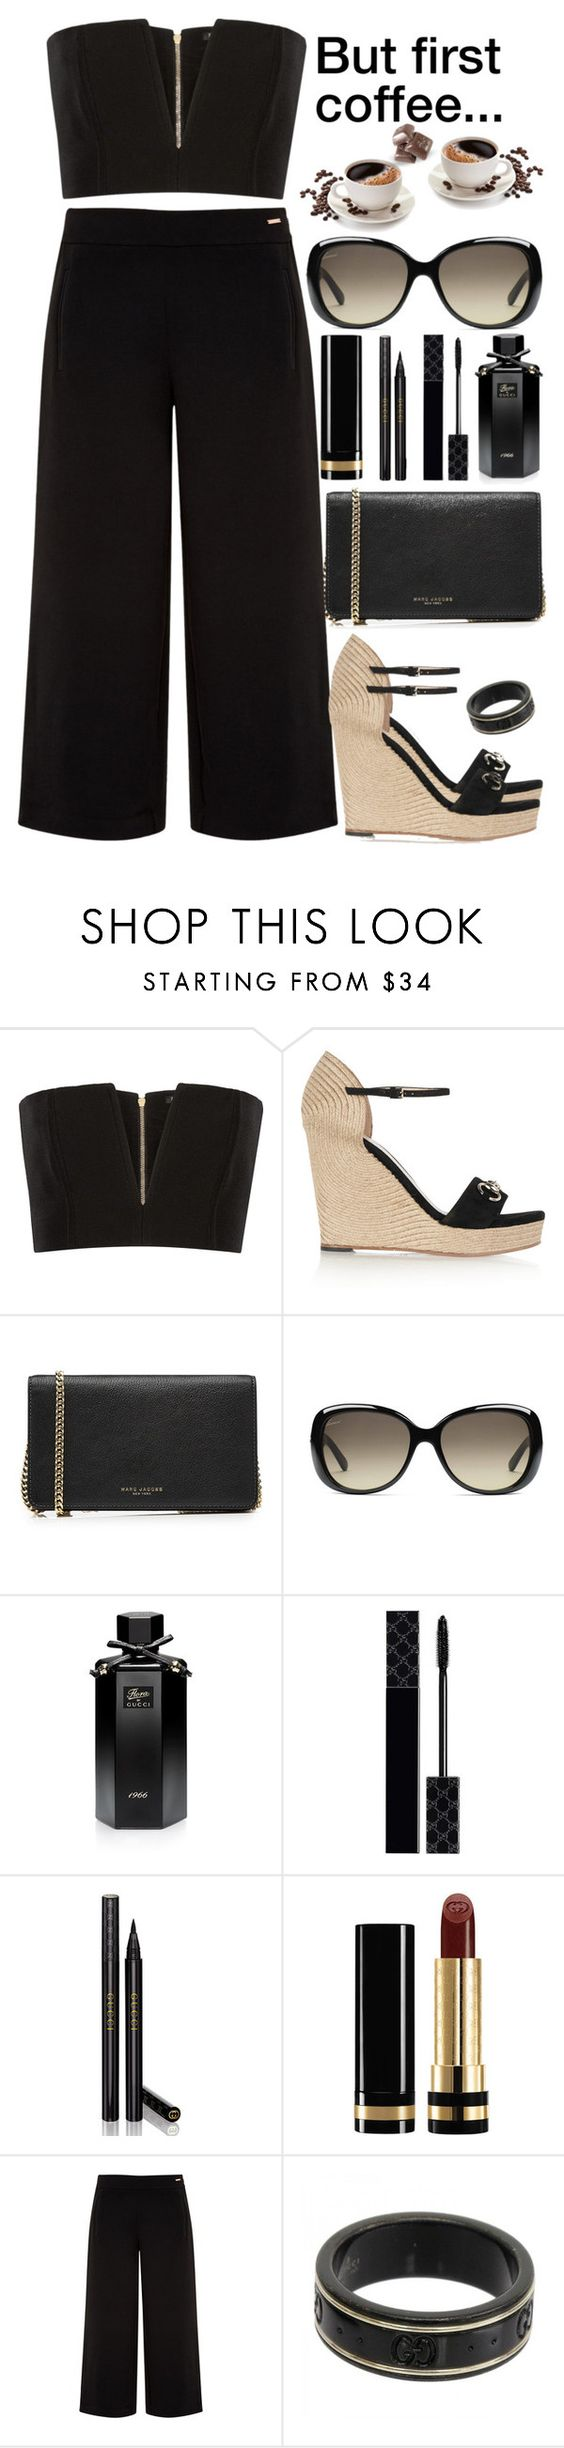 """""""But first coffee..."""" by rasa-j ❤ liked on Polyvore featuring Balmain, Gucci, Marc Jacobs and Ted Baker"""